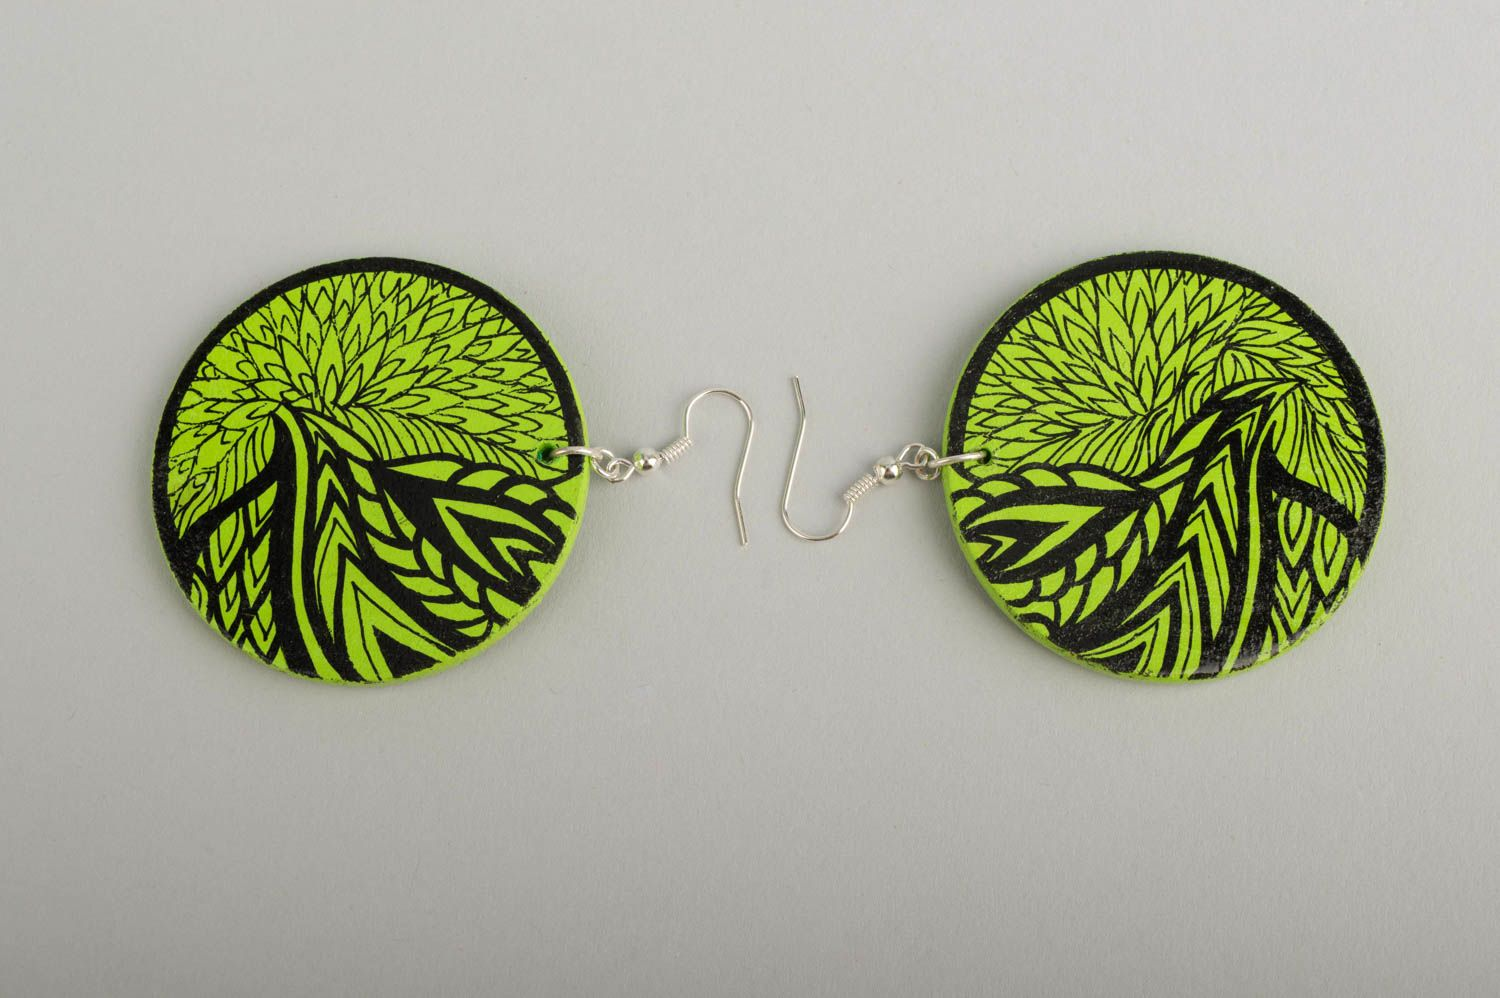 Fashion jewelry handmade earrings wooden jewelry designer accessories gift ideas photo 3